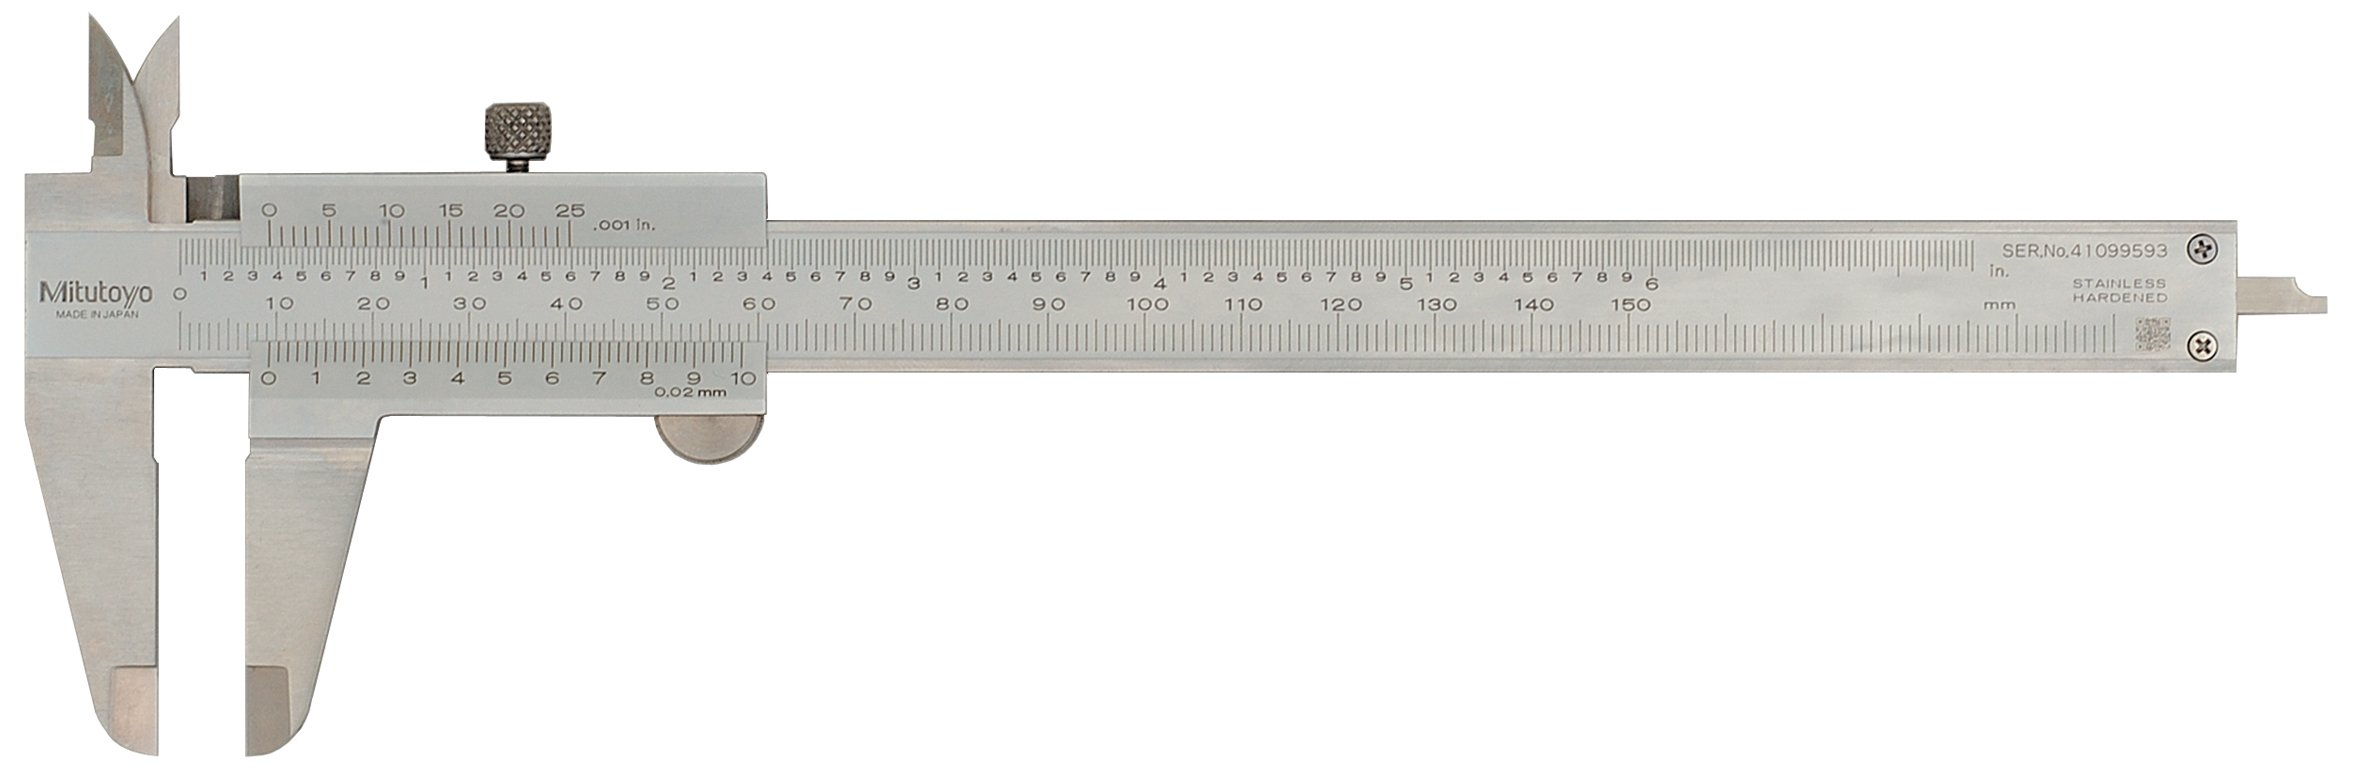 Mitutoyo 530-312 Vernier Calipers, Stainless Steel, for Inside, Outside, Depth and Step Measurements, Metric, 0''/0mm-150mm Range, +/-0.03mm Accuracy, 0.02mm Resolution, 40mm Jaw Depth